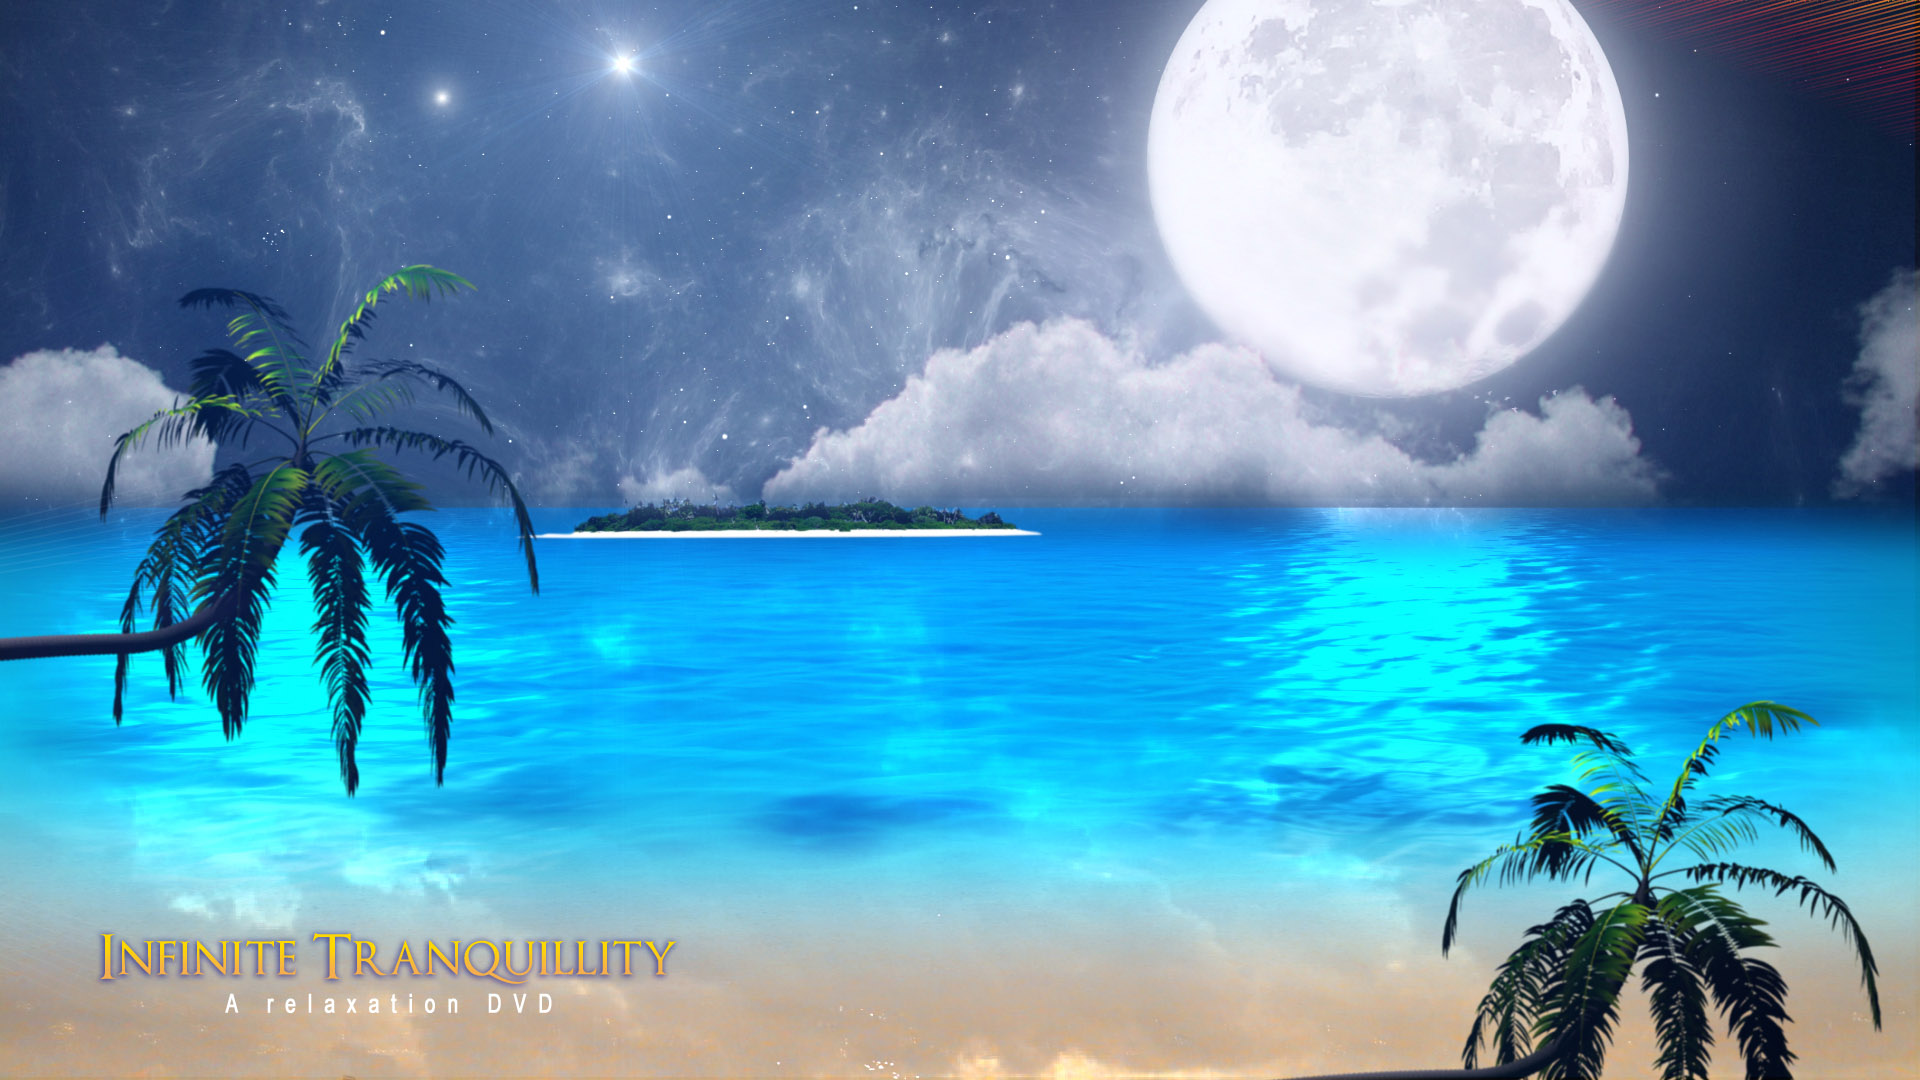 Infinite Tranquillity HD relaxation wallpapers 1920x1080